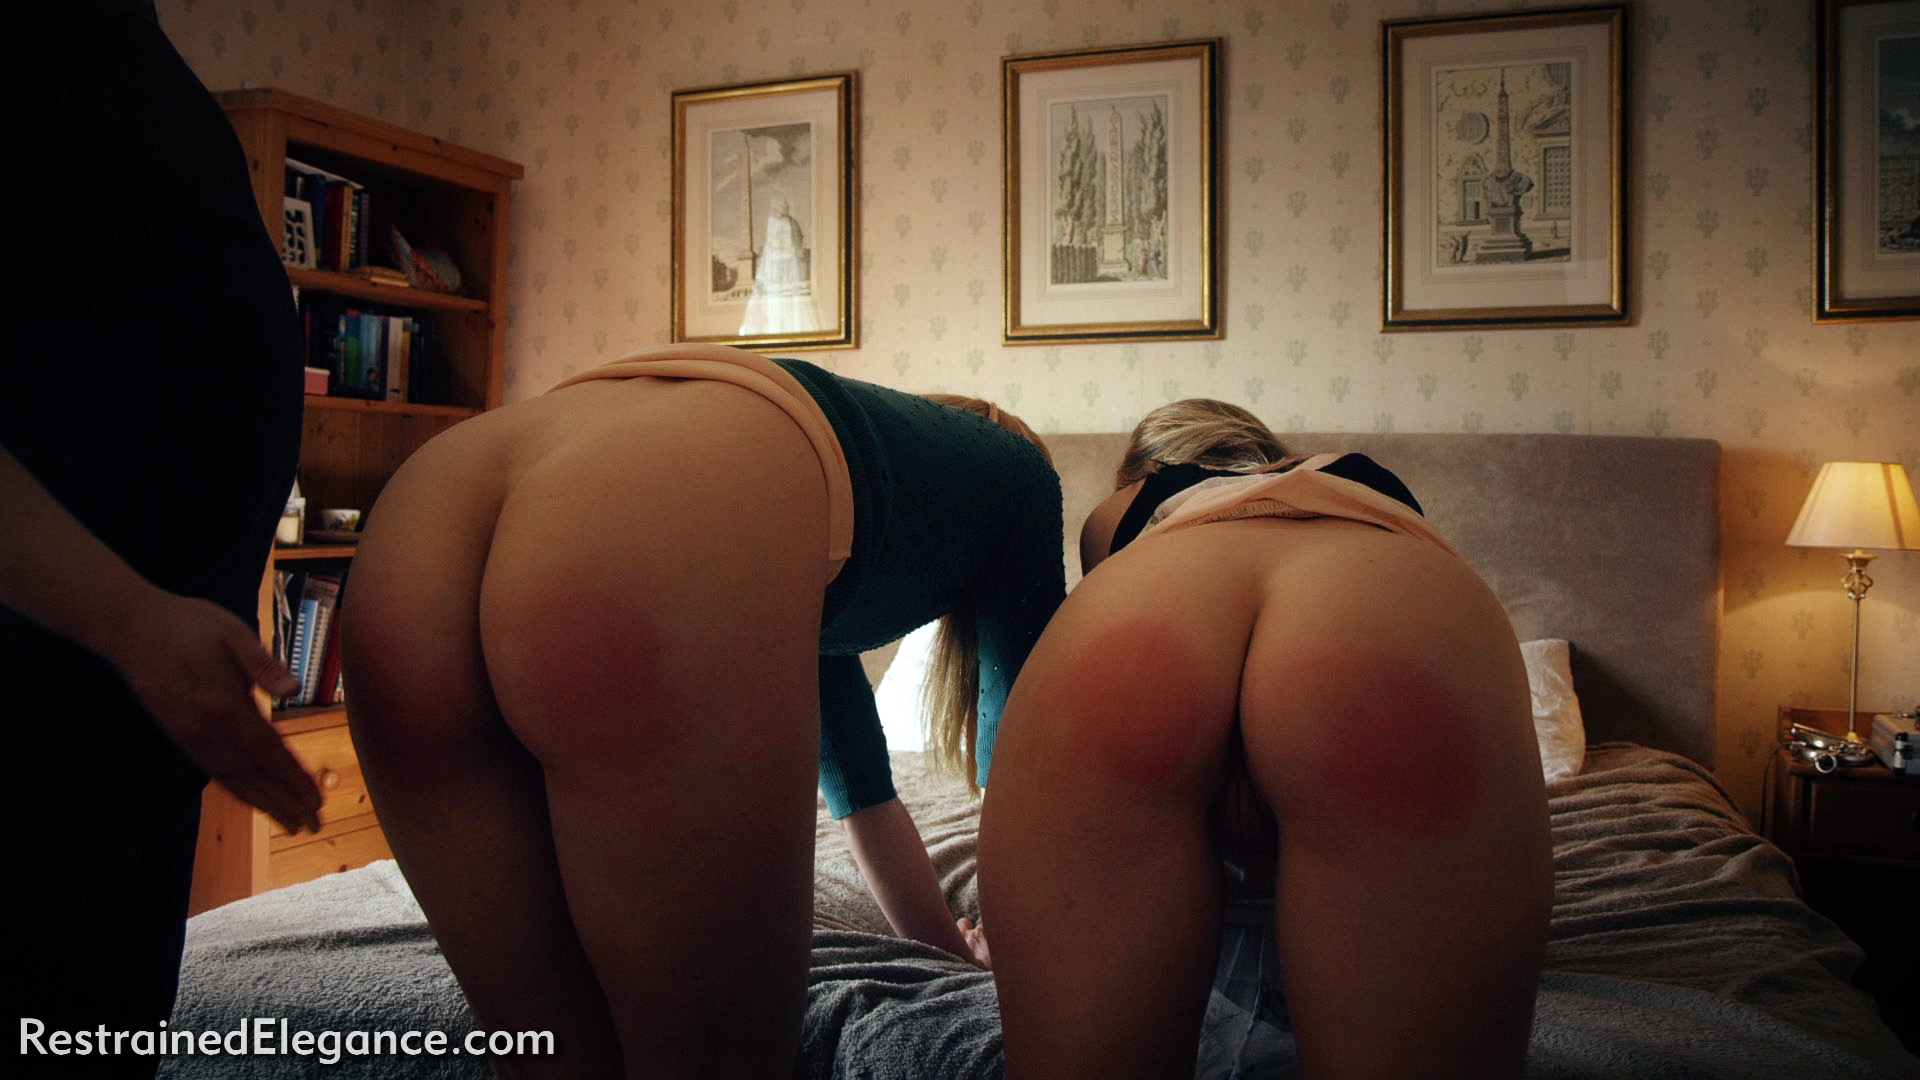 Restrained Elegance – MP4/Full HD – The Roleplay (Ariel, Lucy and the Travelling Disciplinarian, Part Three)